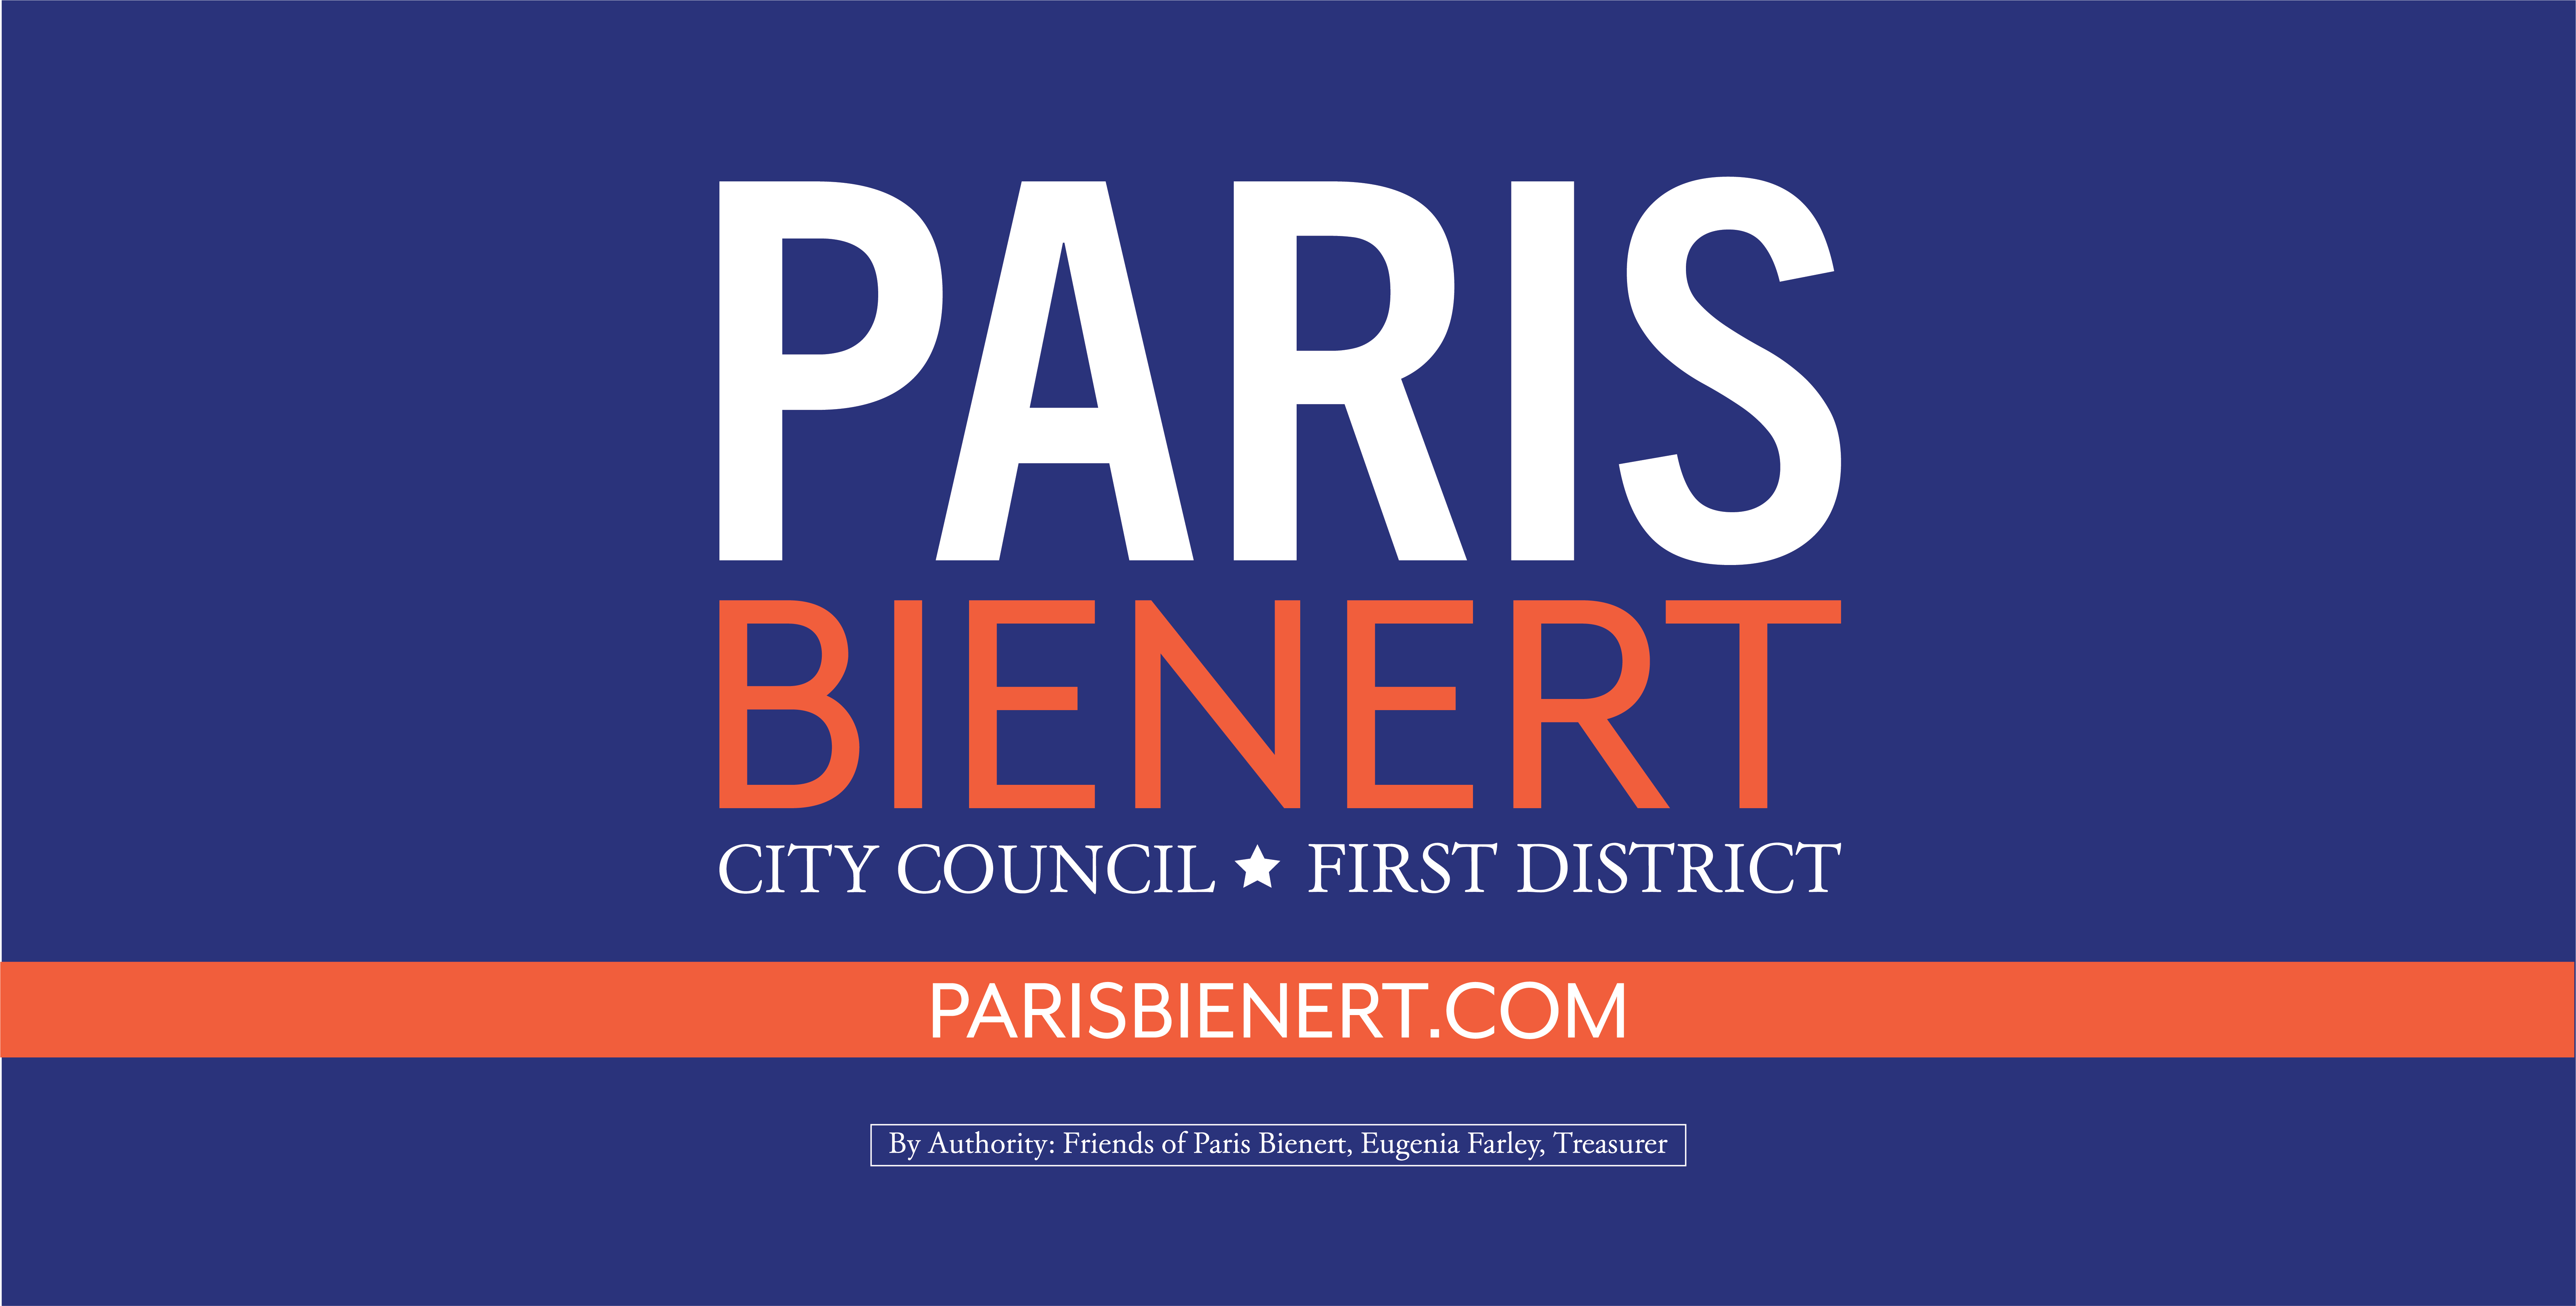 Paris Bienert for City Council